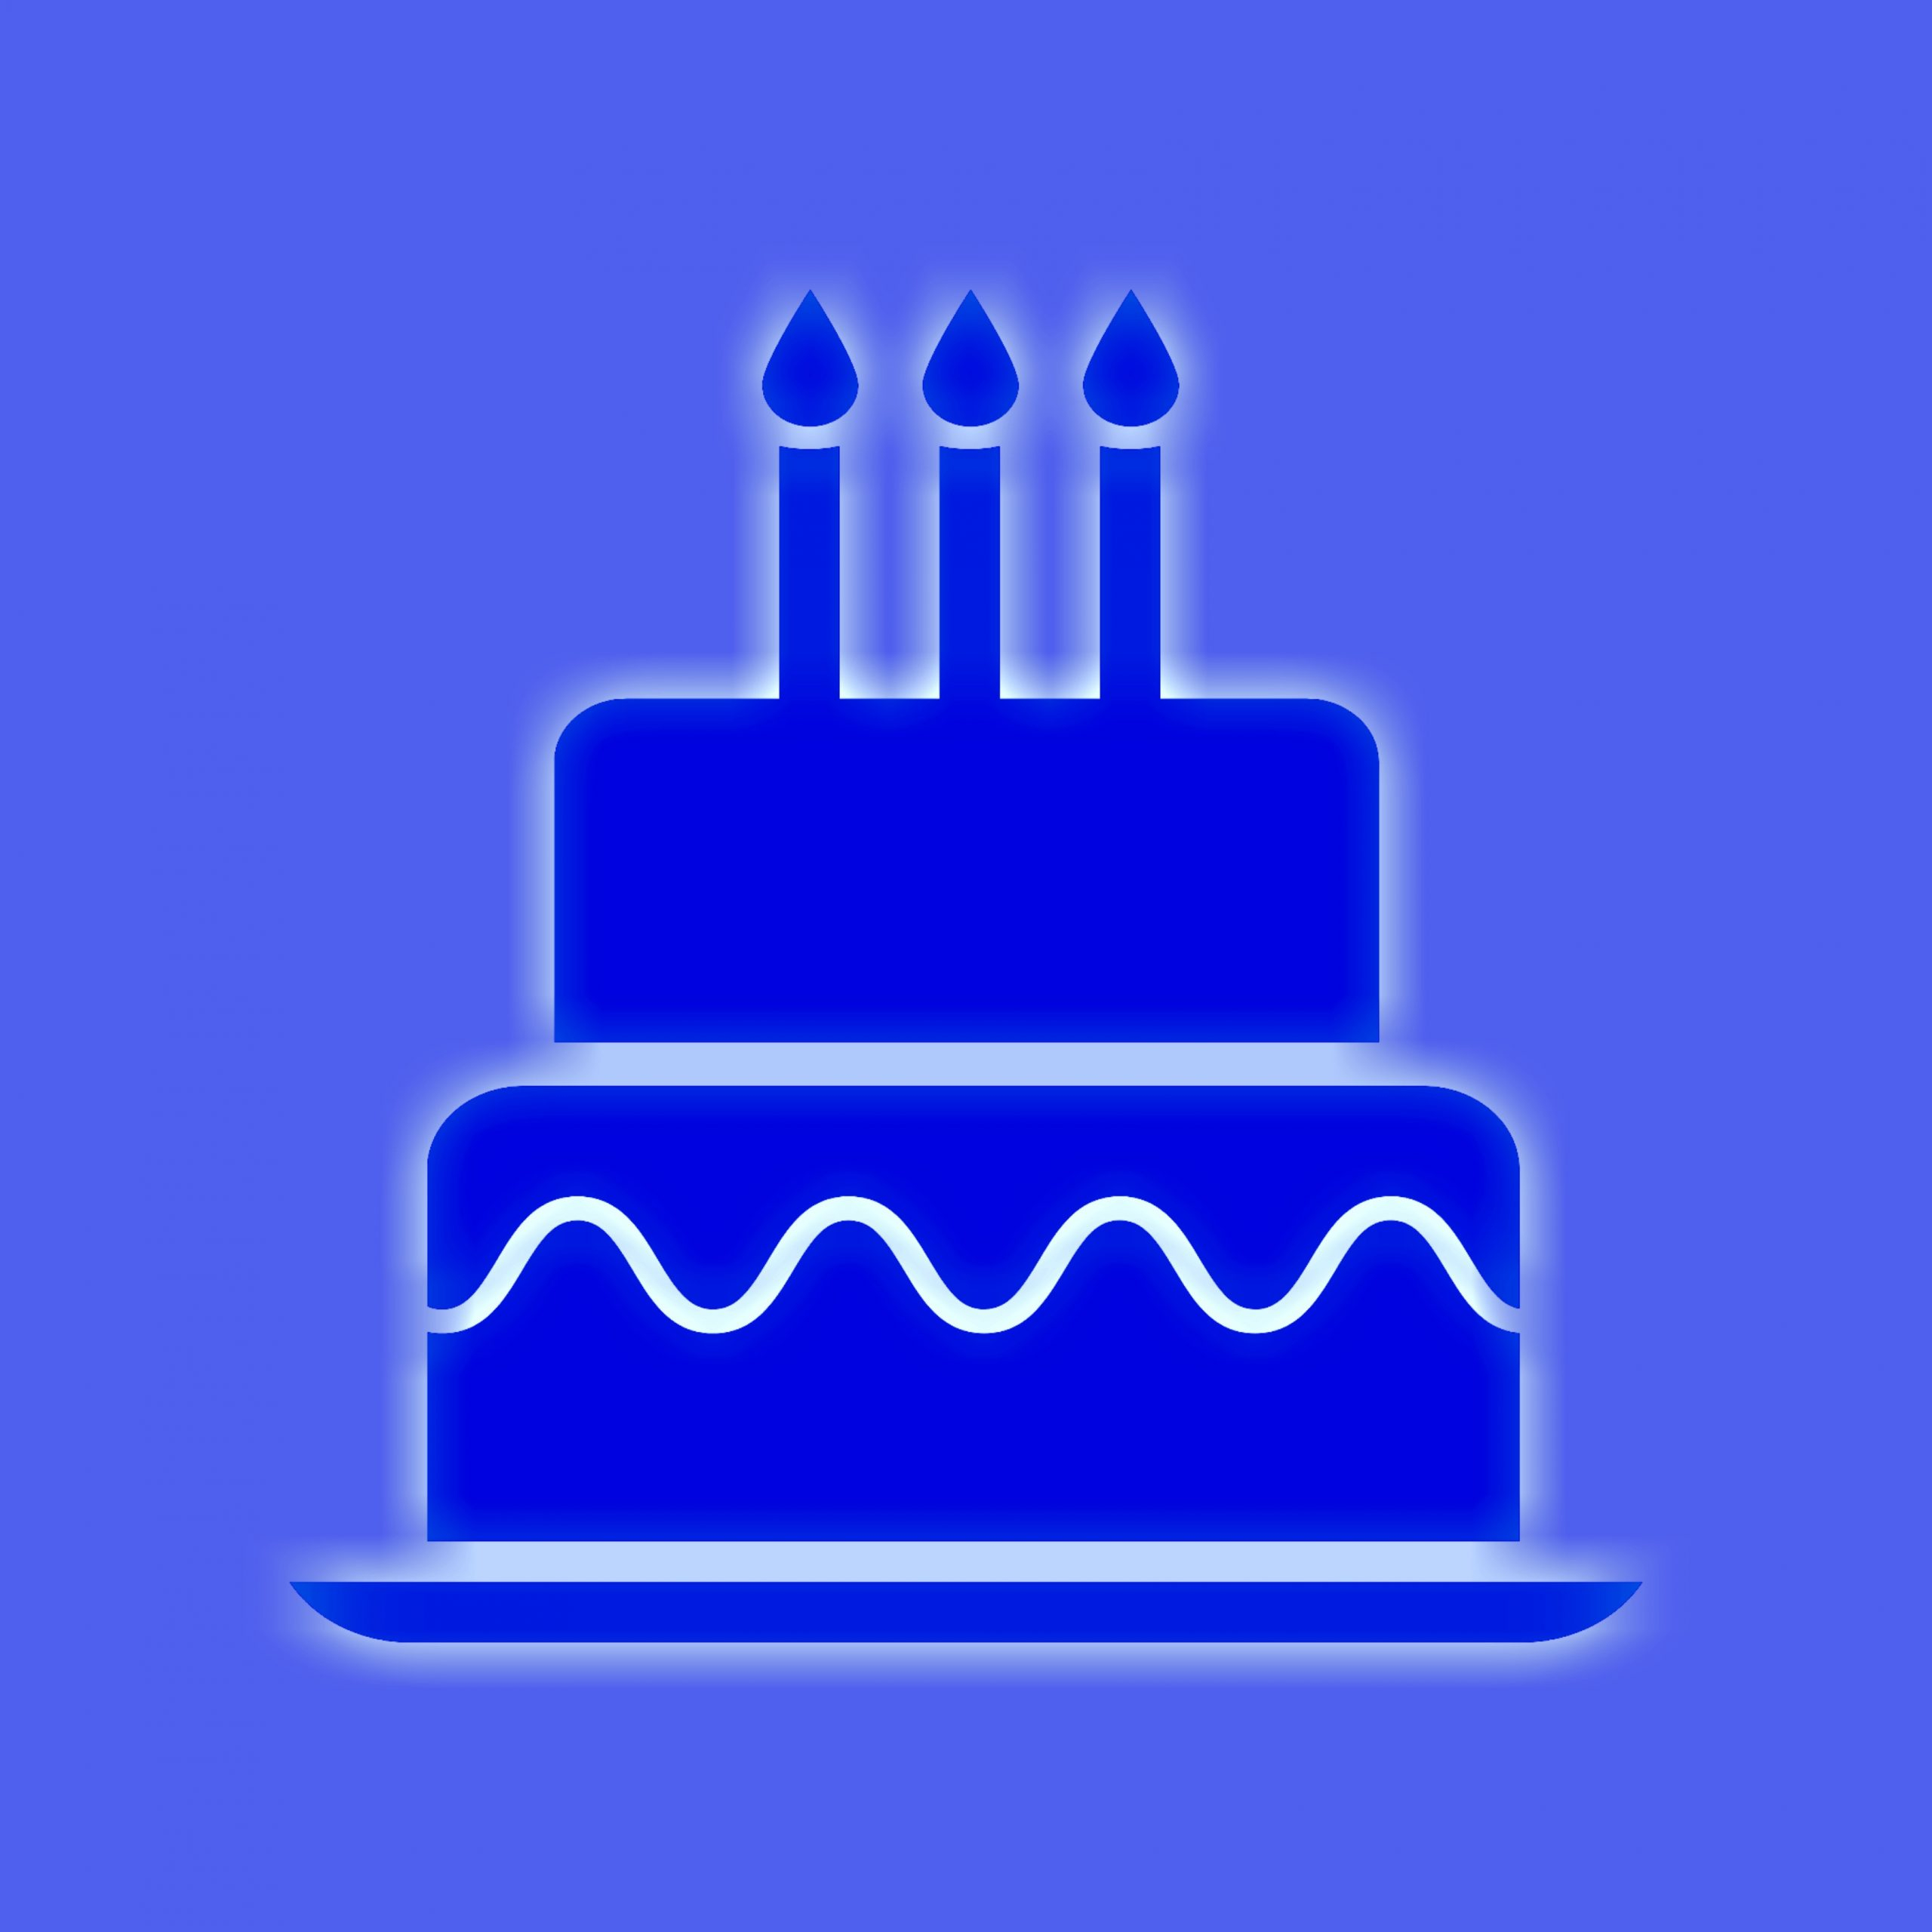 Birthday cake and candles illustration